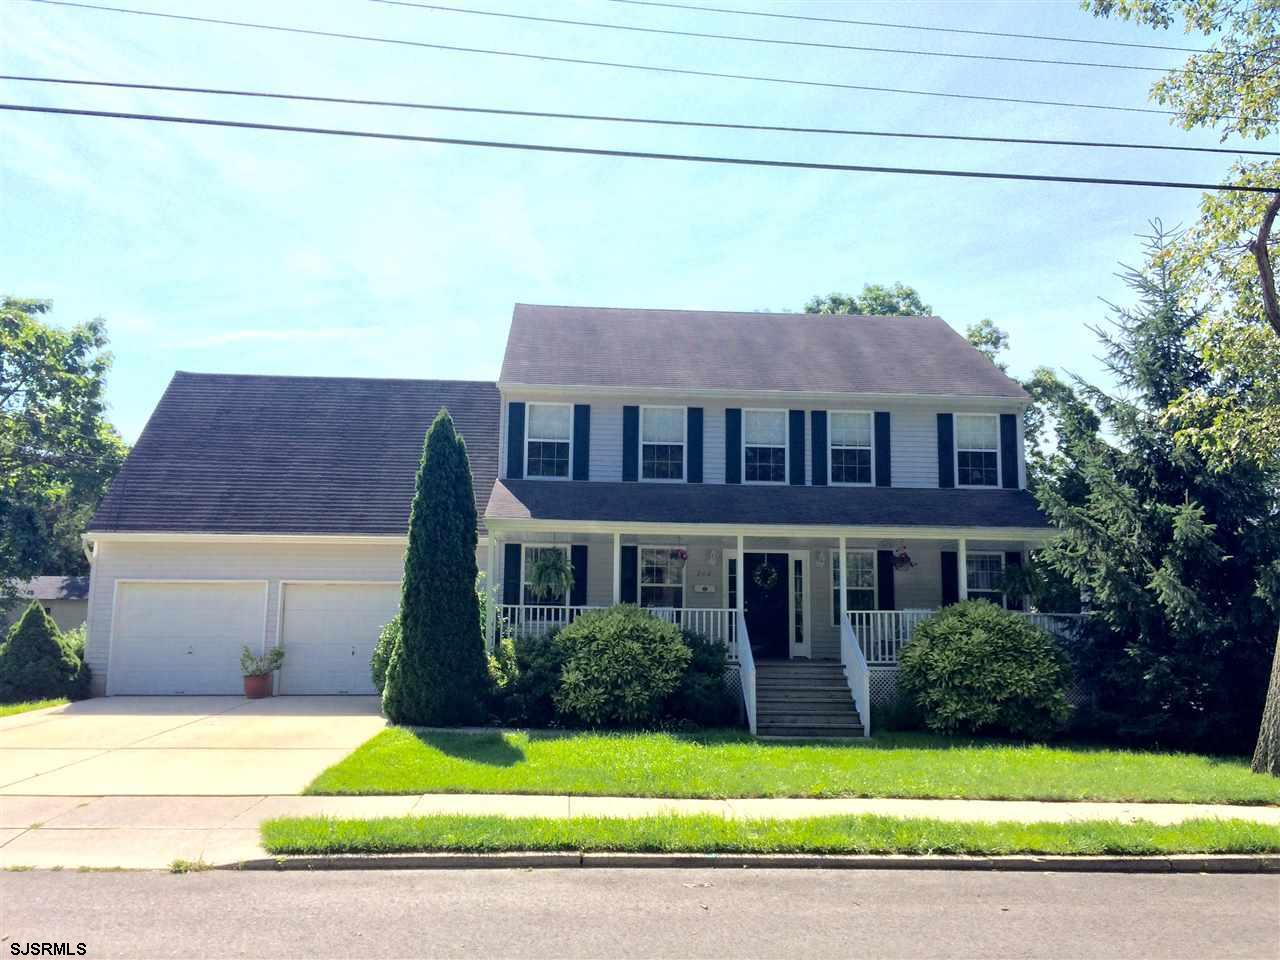 744 3rd St Somers Point Nj 08244 Mls 471334 The